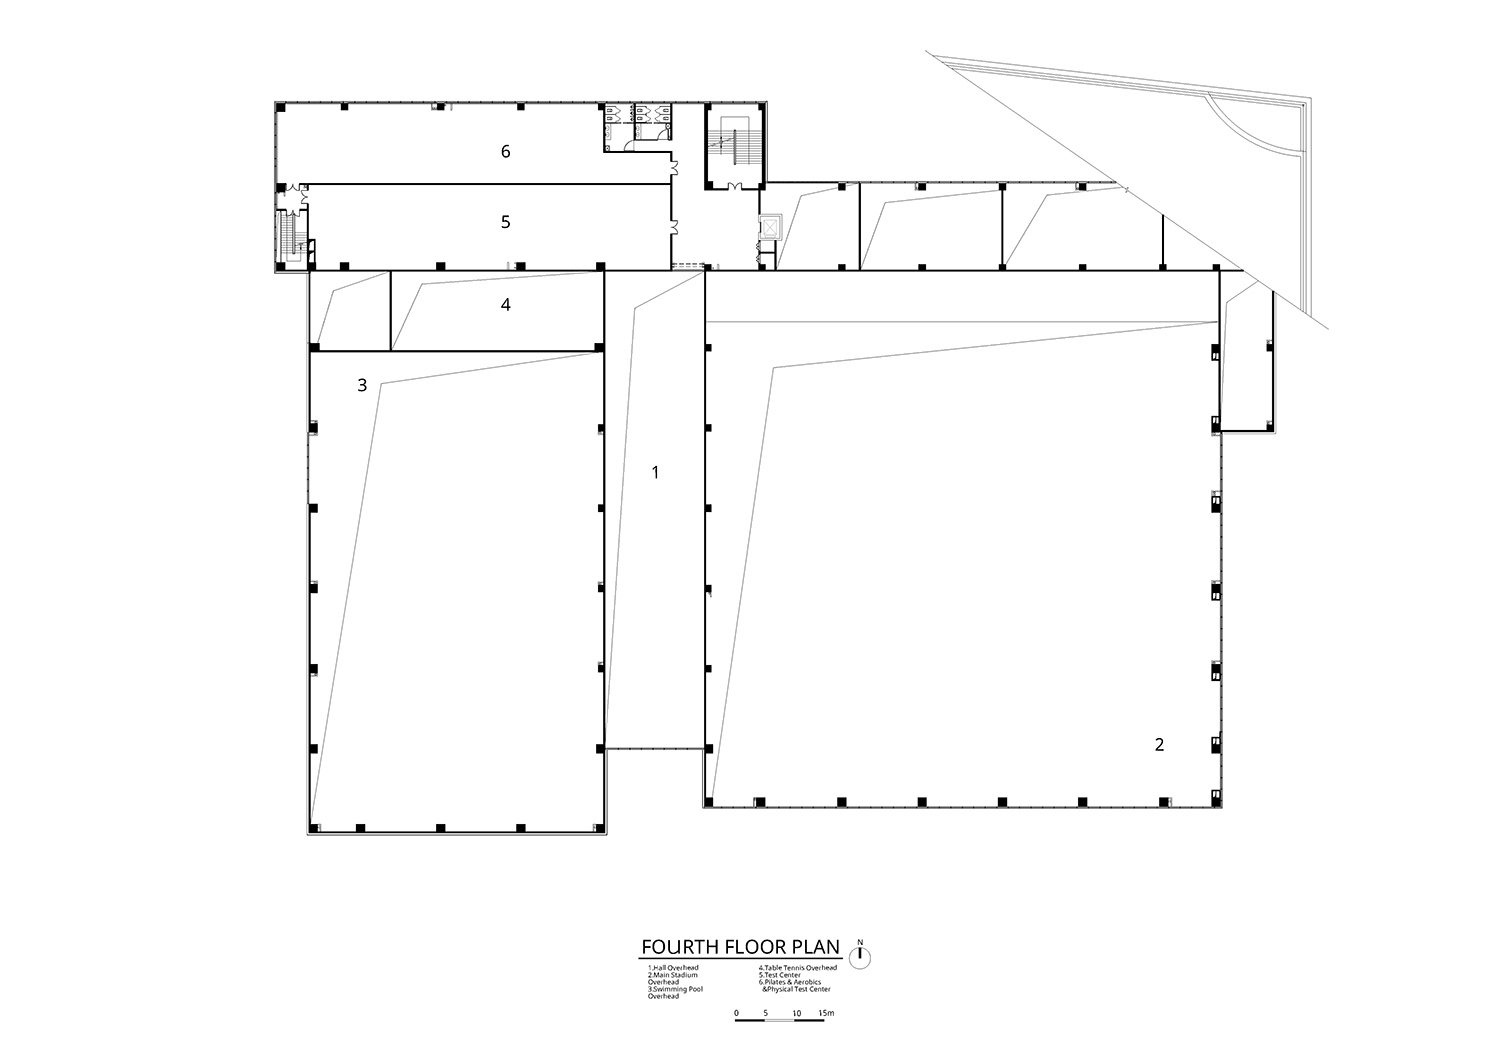 Fourth Floor Plan Atelier Alter Architects}